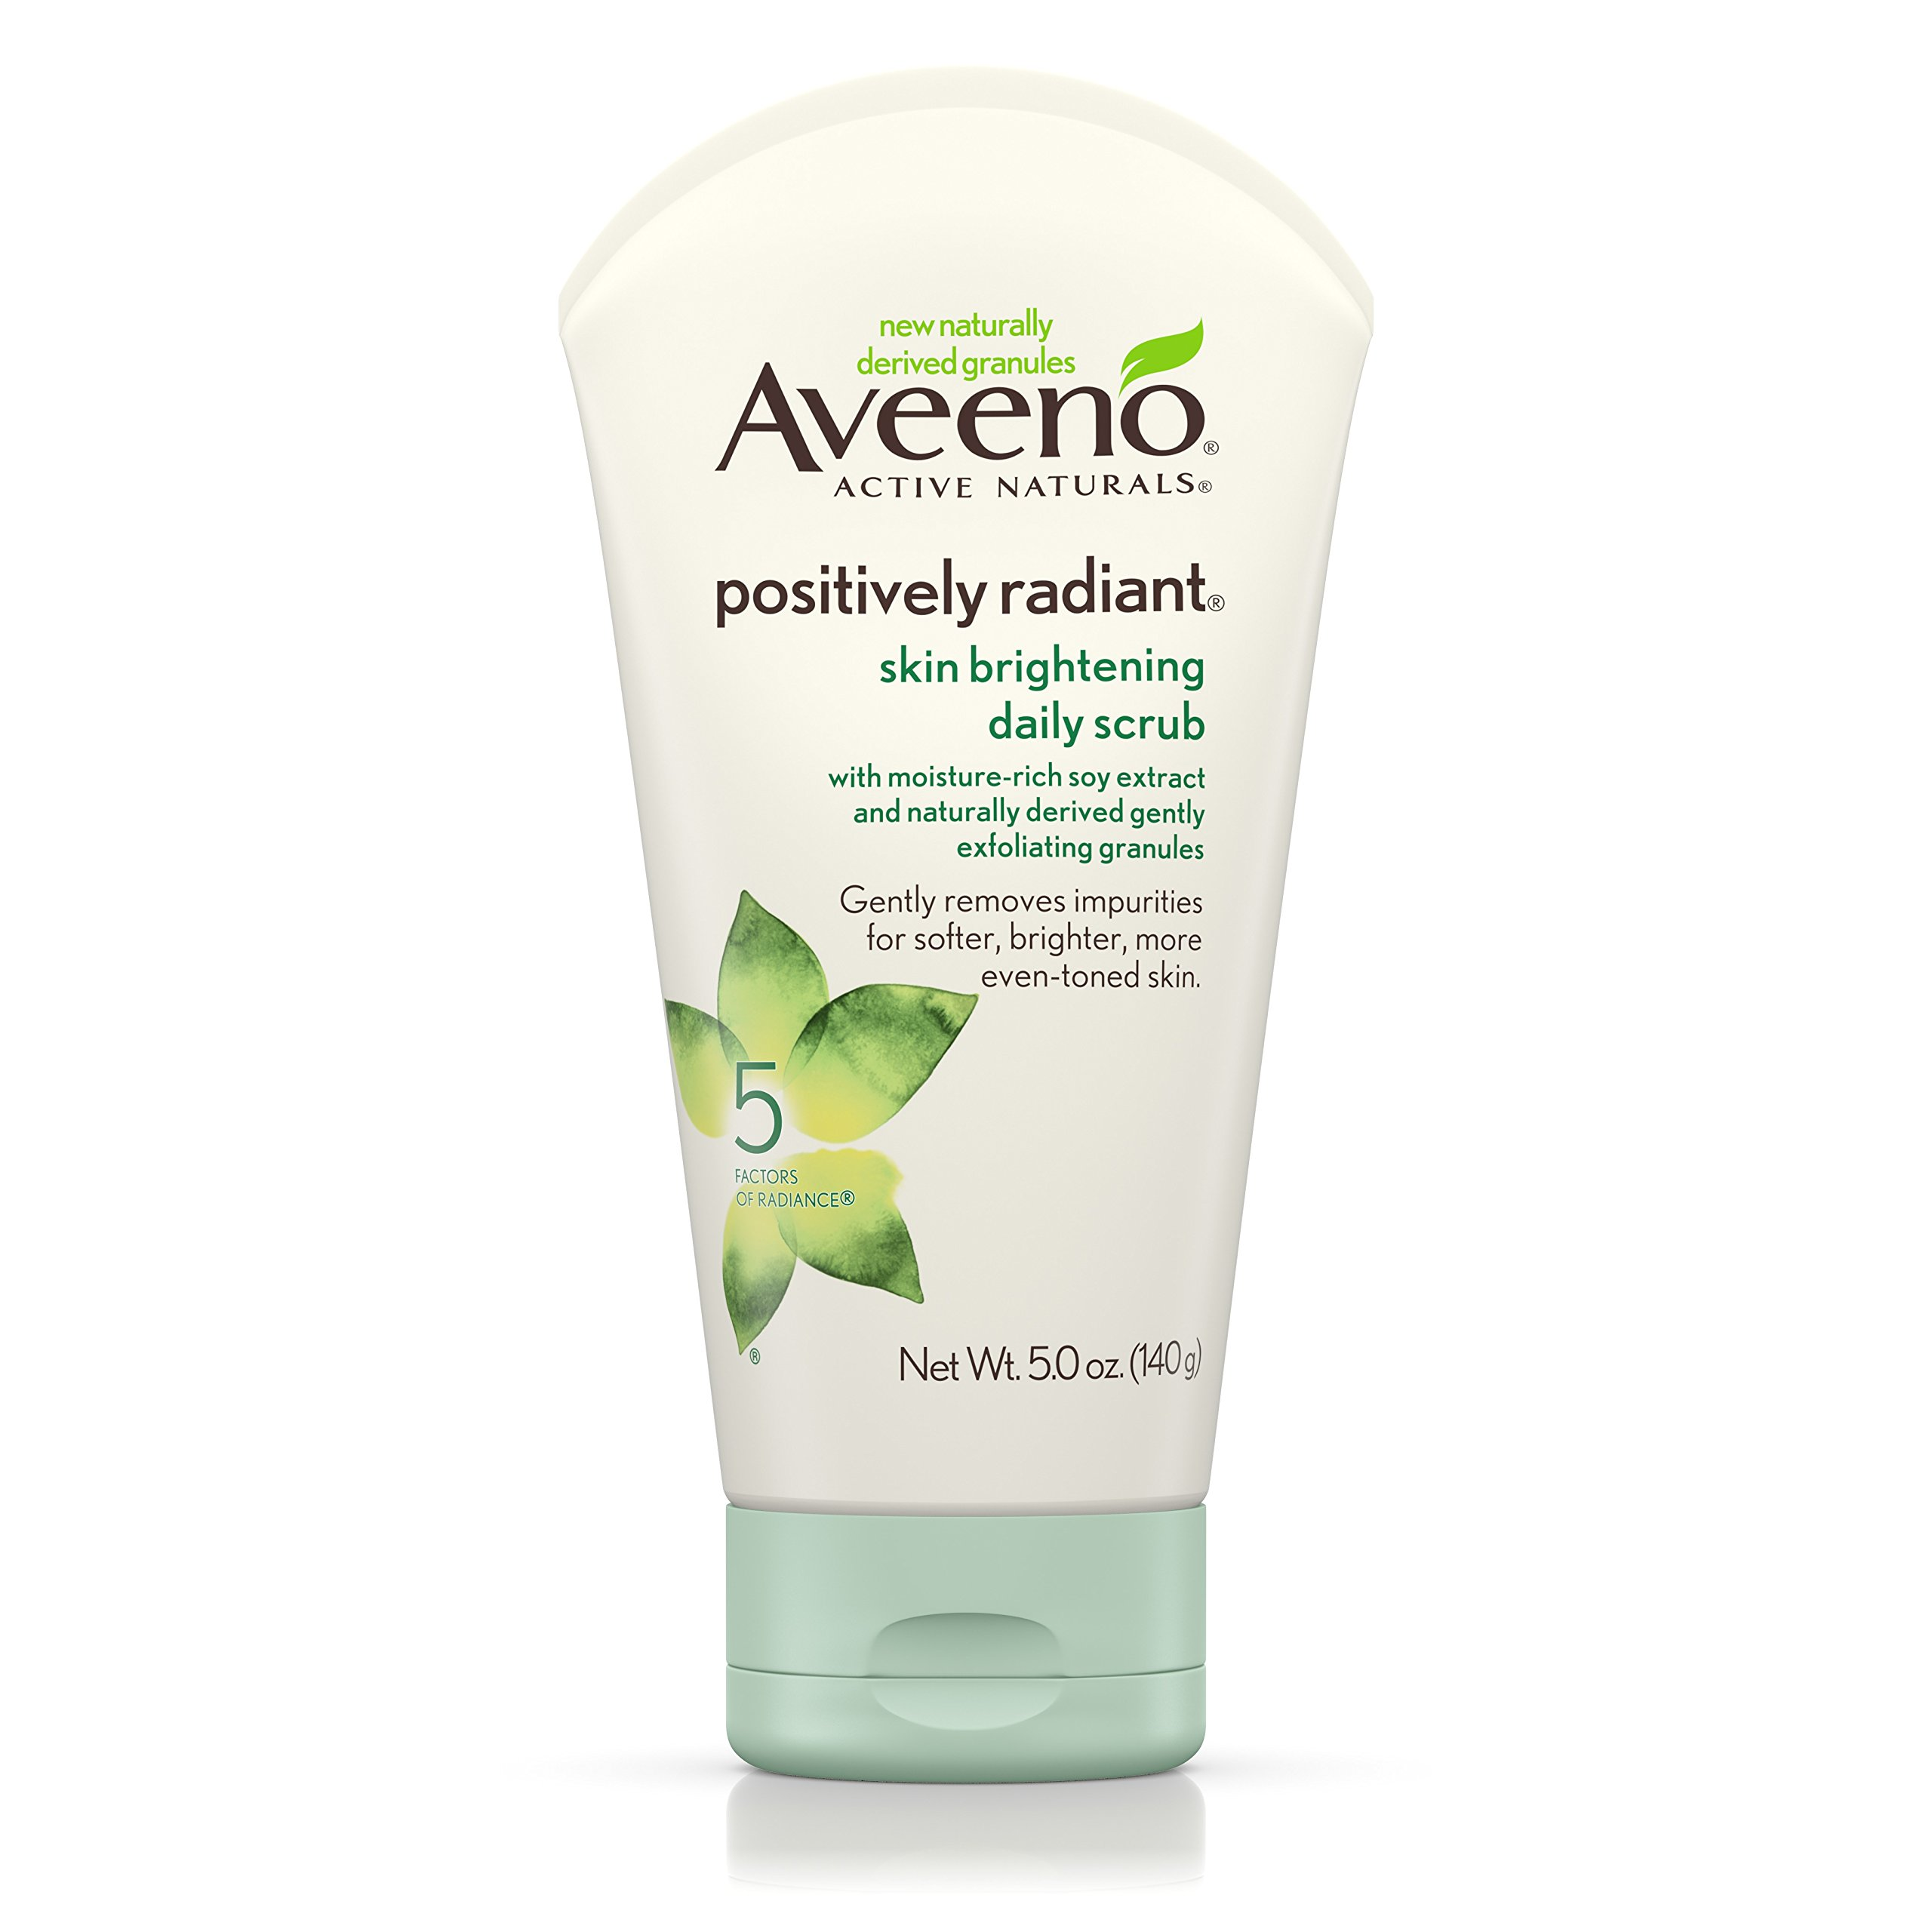 Aveeno Positively Radiant Brightening Daily Scrub 5 Ounce (145ml) (6 Pack)